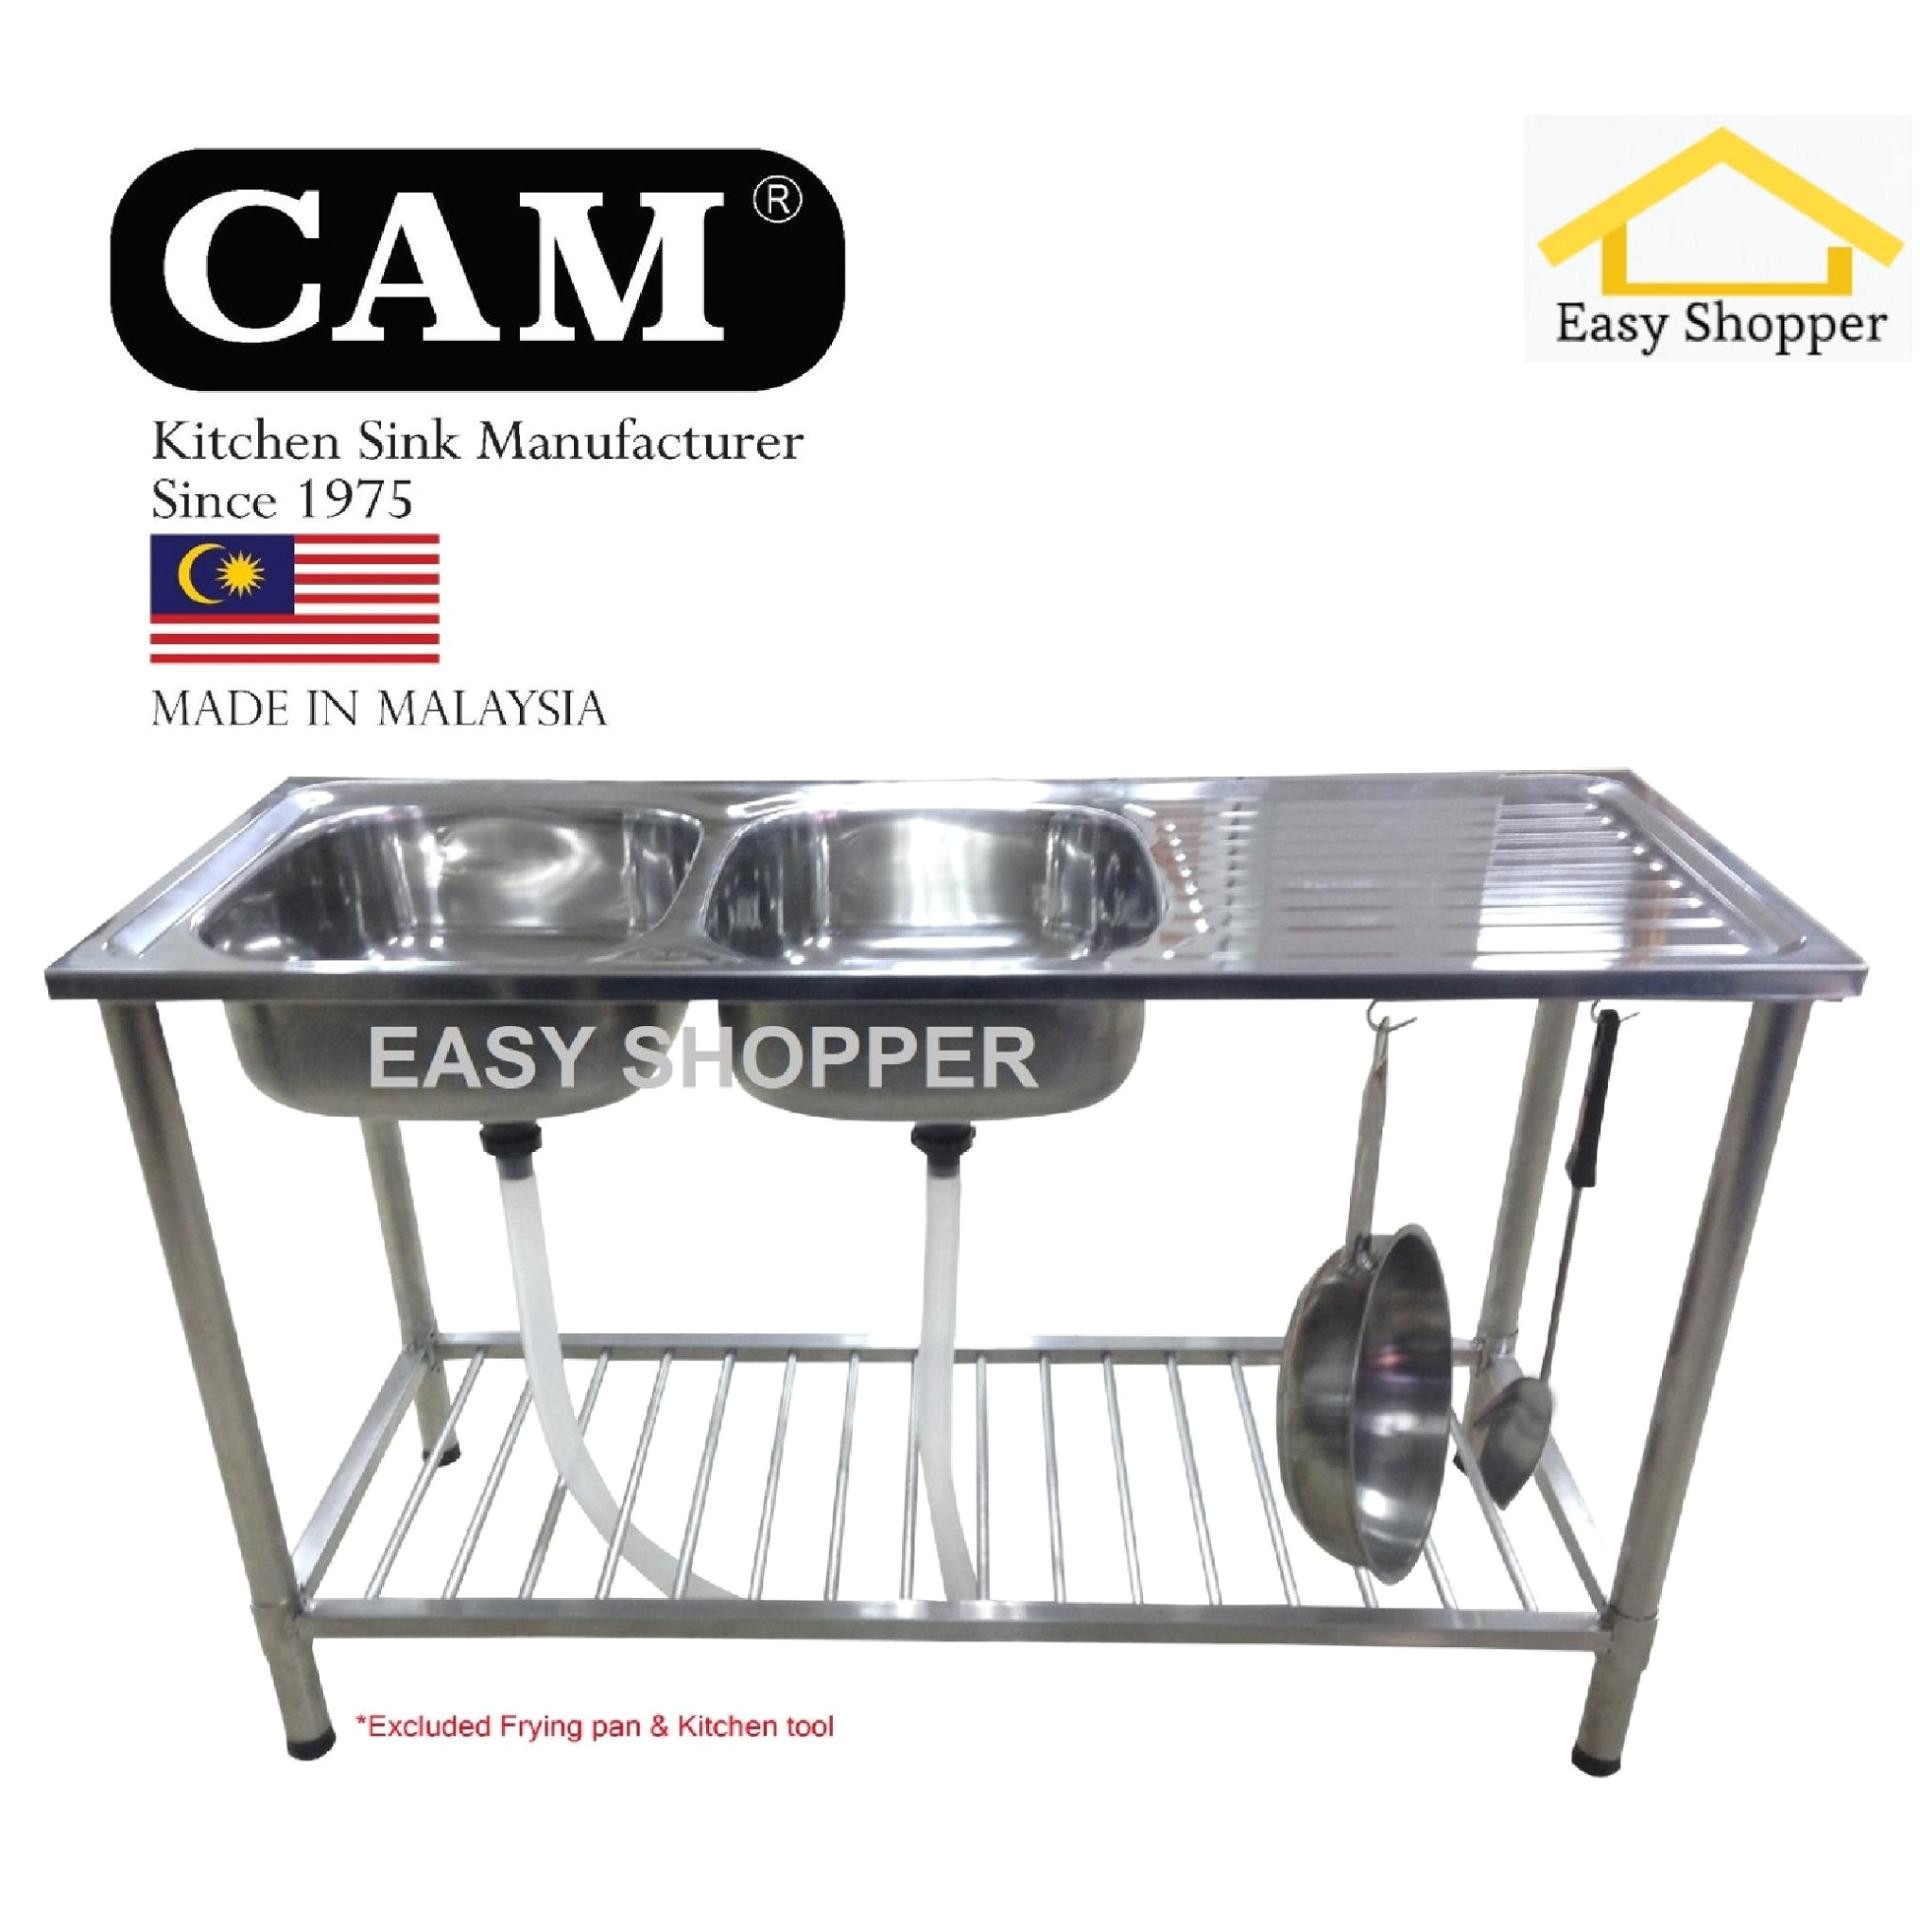 cam brand diy kitchen sink with stand double bowl single drainer